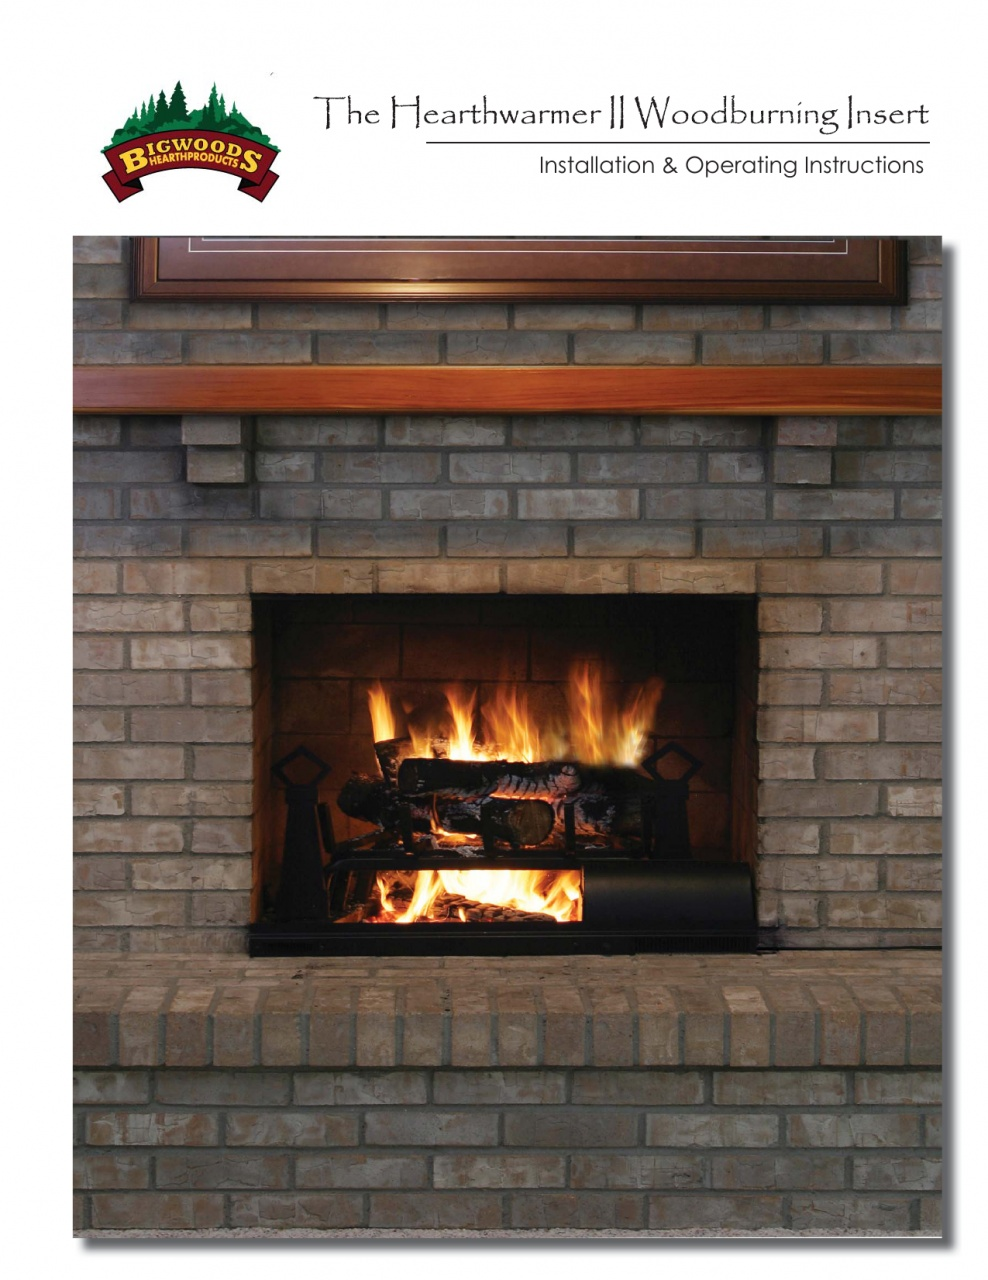 Fireplace Grate with Blower Beautiful Wood Burning Fireplace Blower Grate Installation